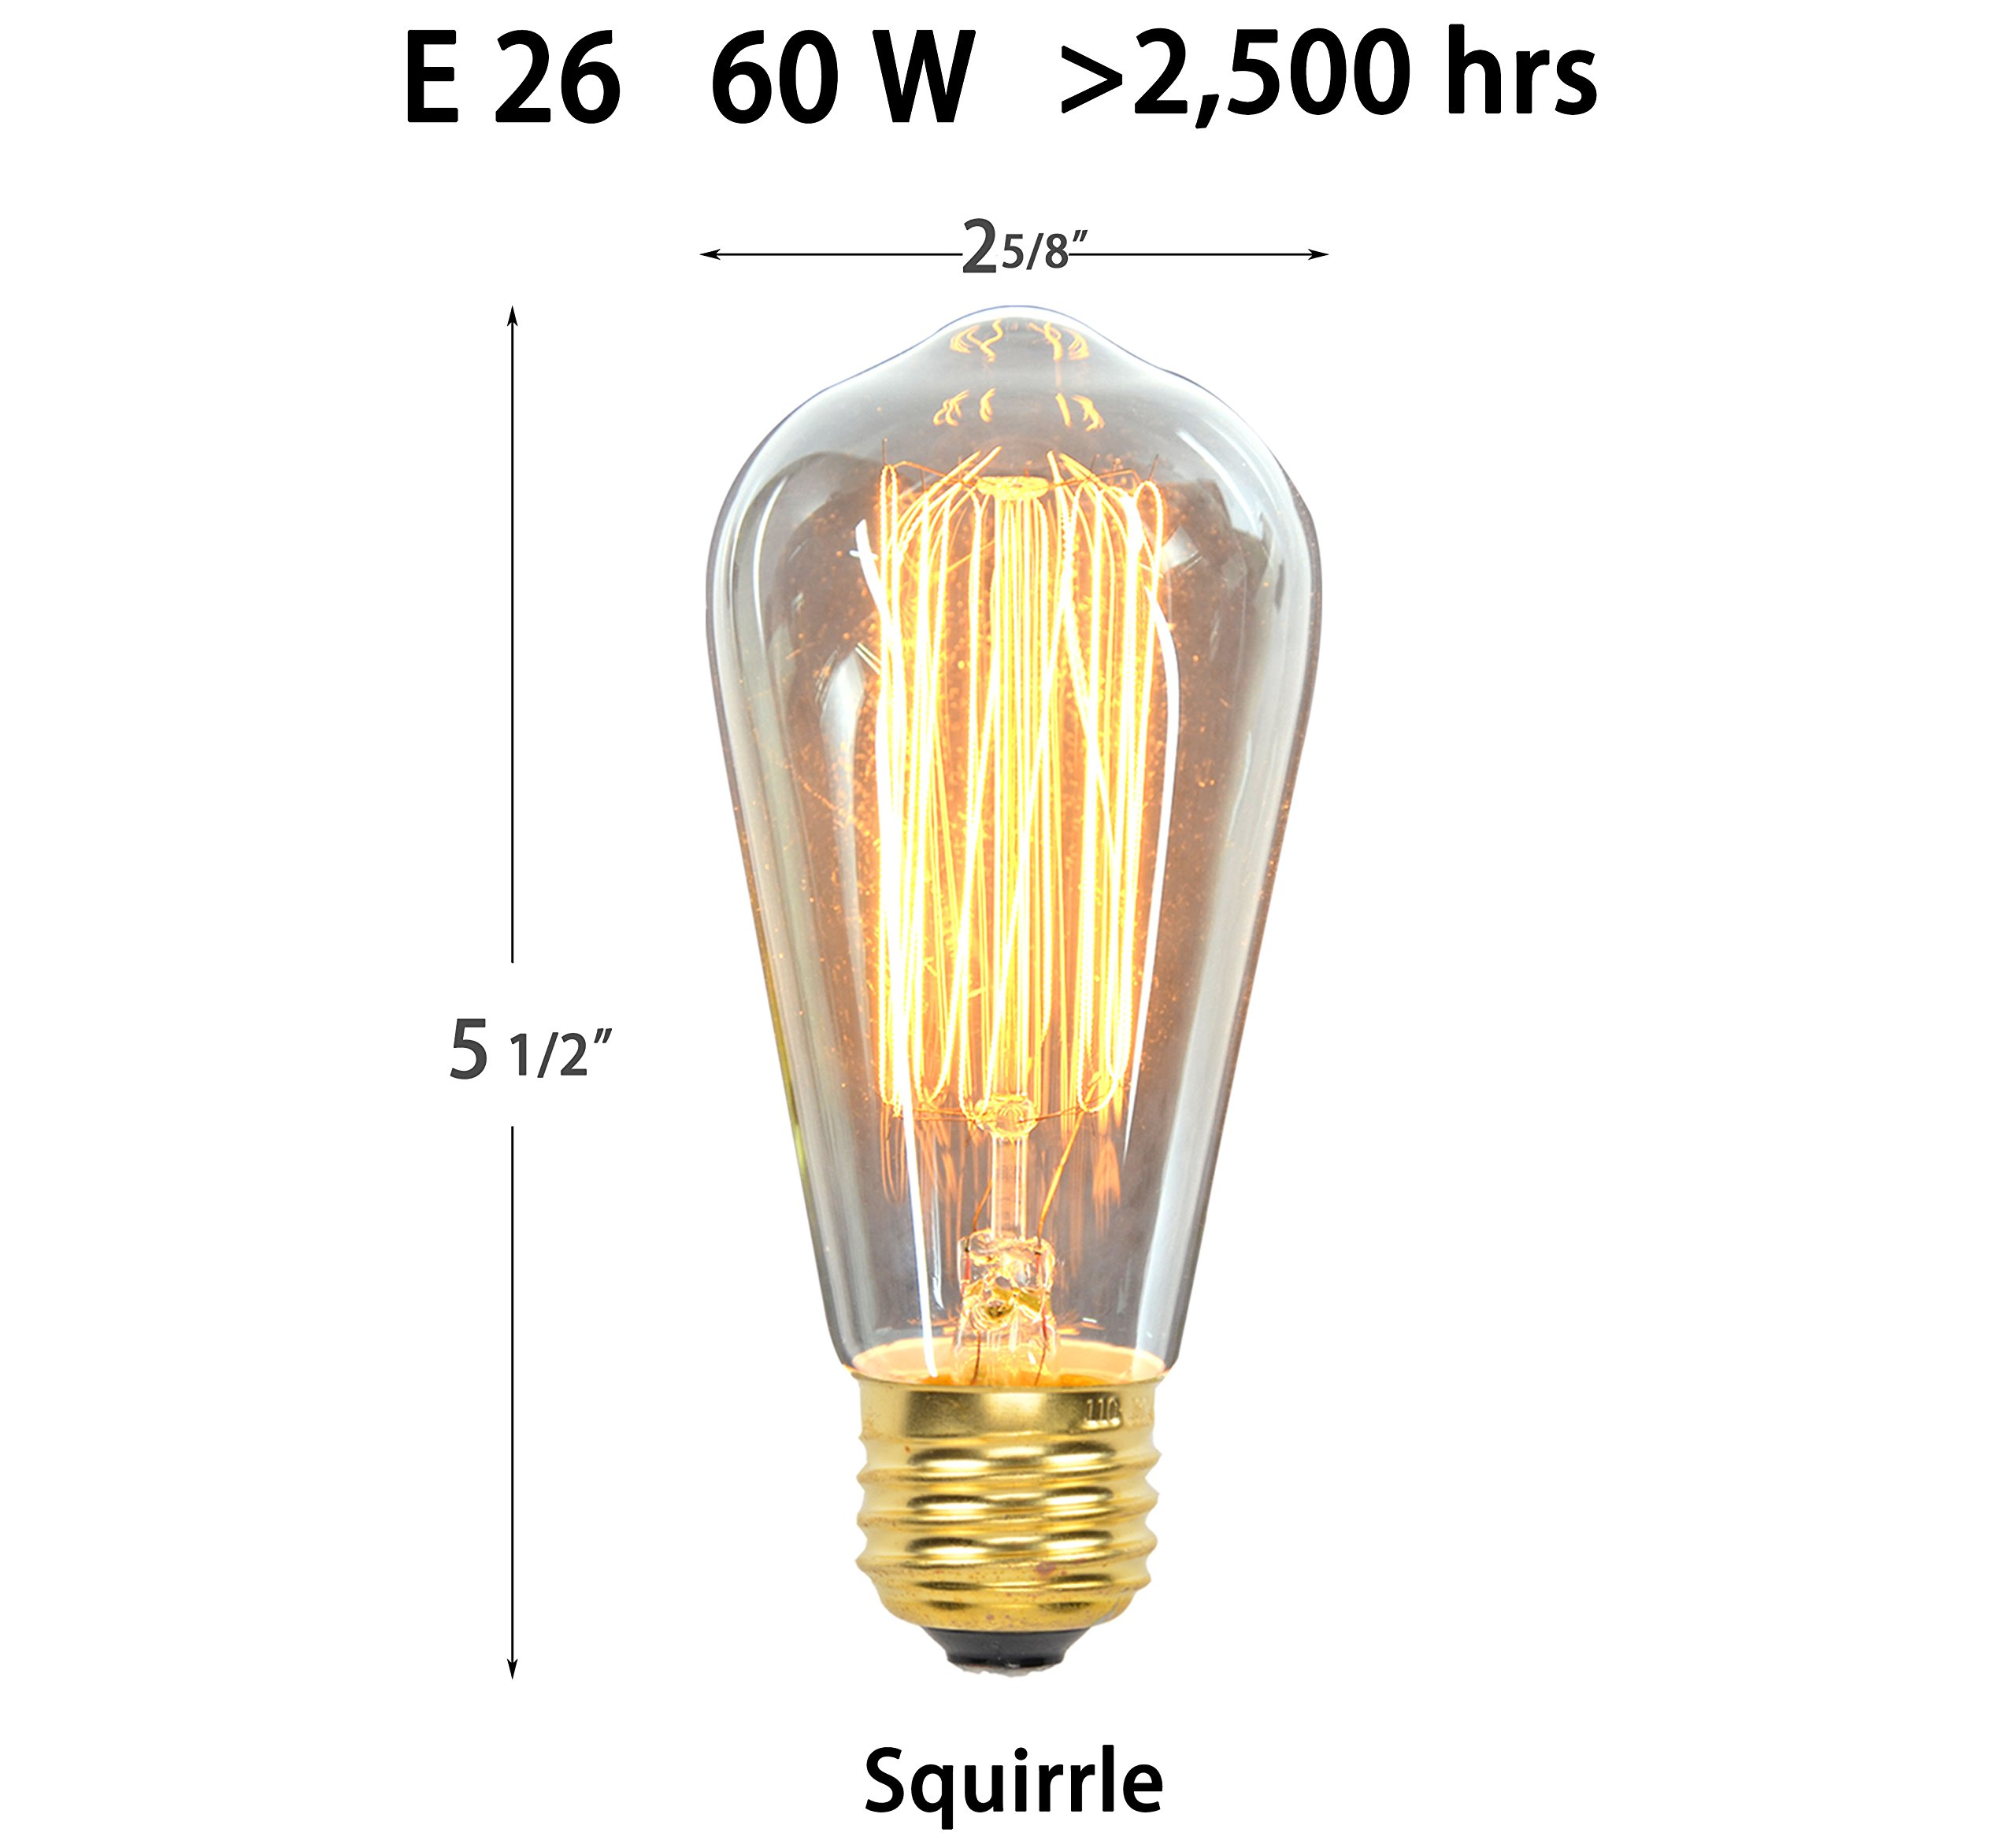 Vintage Edison Light Bulbs (6 Pack), 60W, ST64, E26, Squirrel Cage, Dimmable,Clear Glass, Industrial Vintage Incandescent Bulbs by Youngever (Image #3)